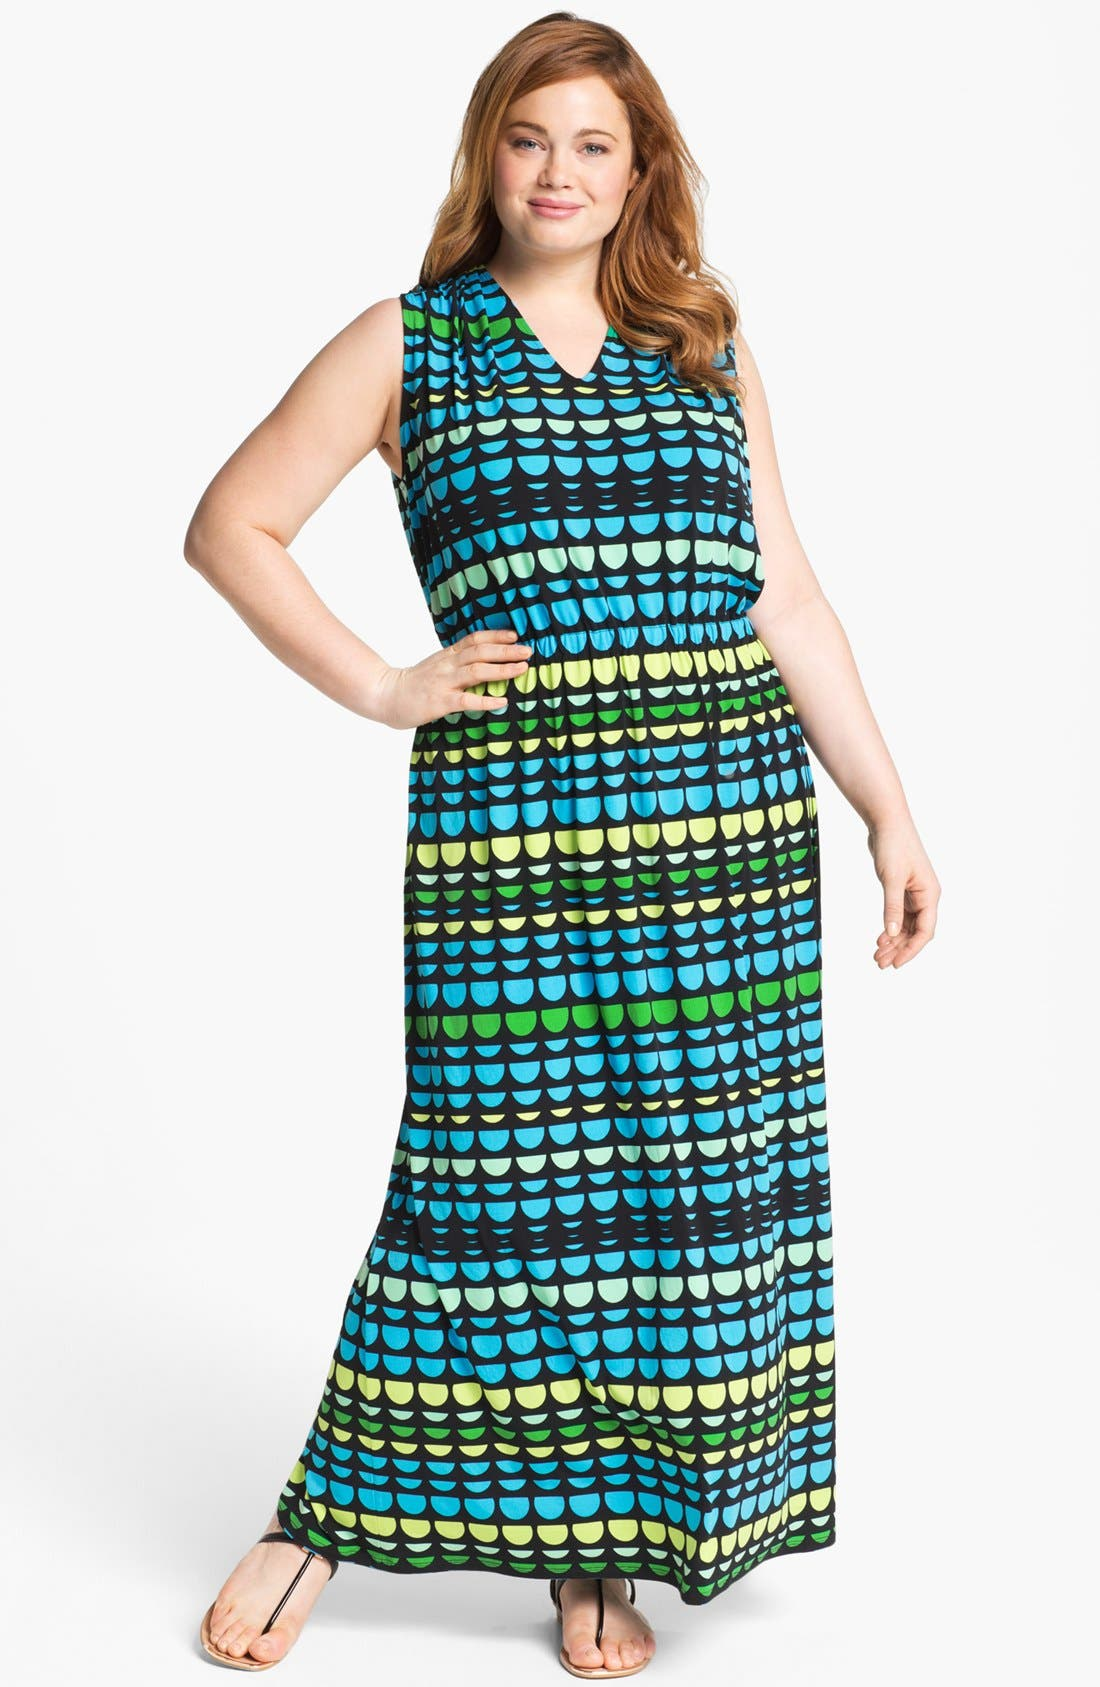 Alternate Image 1 Selected - Vince Camuto Print Jersey Maxi Dress (Plus)